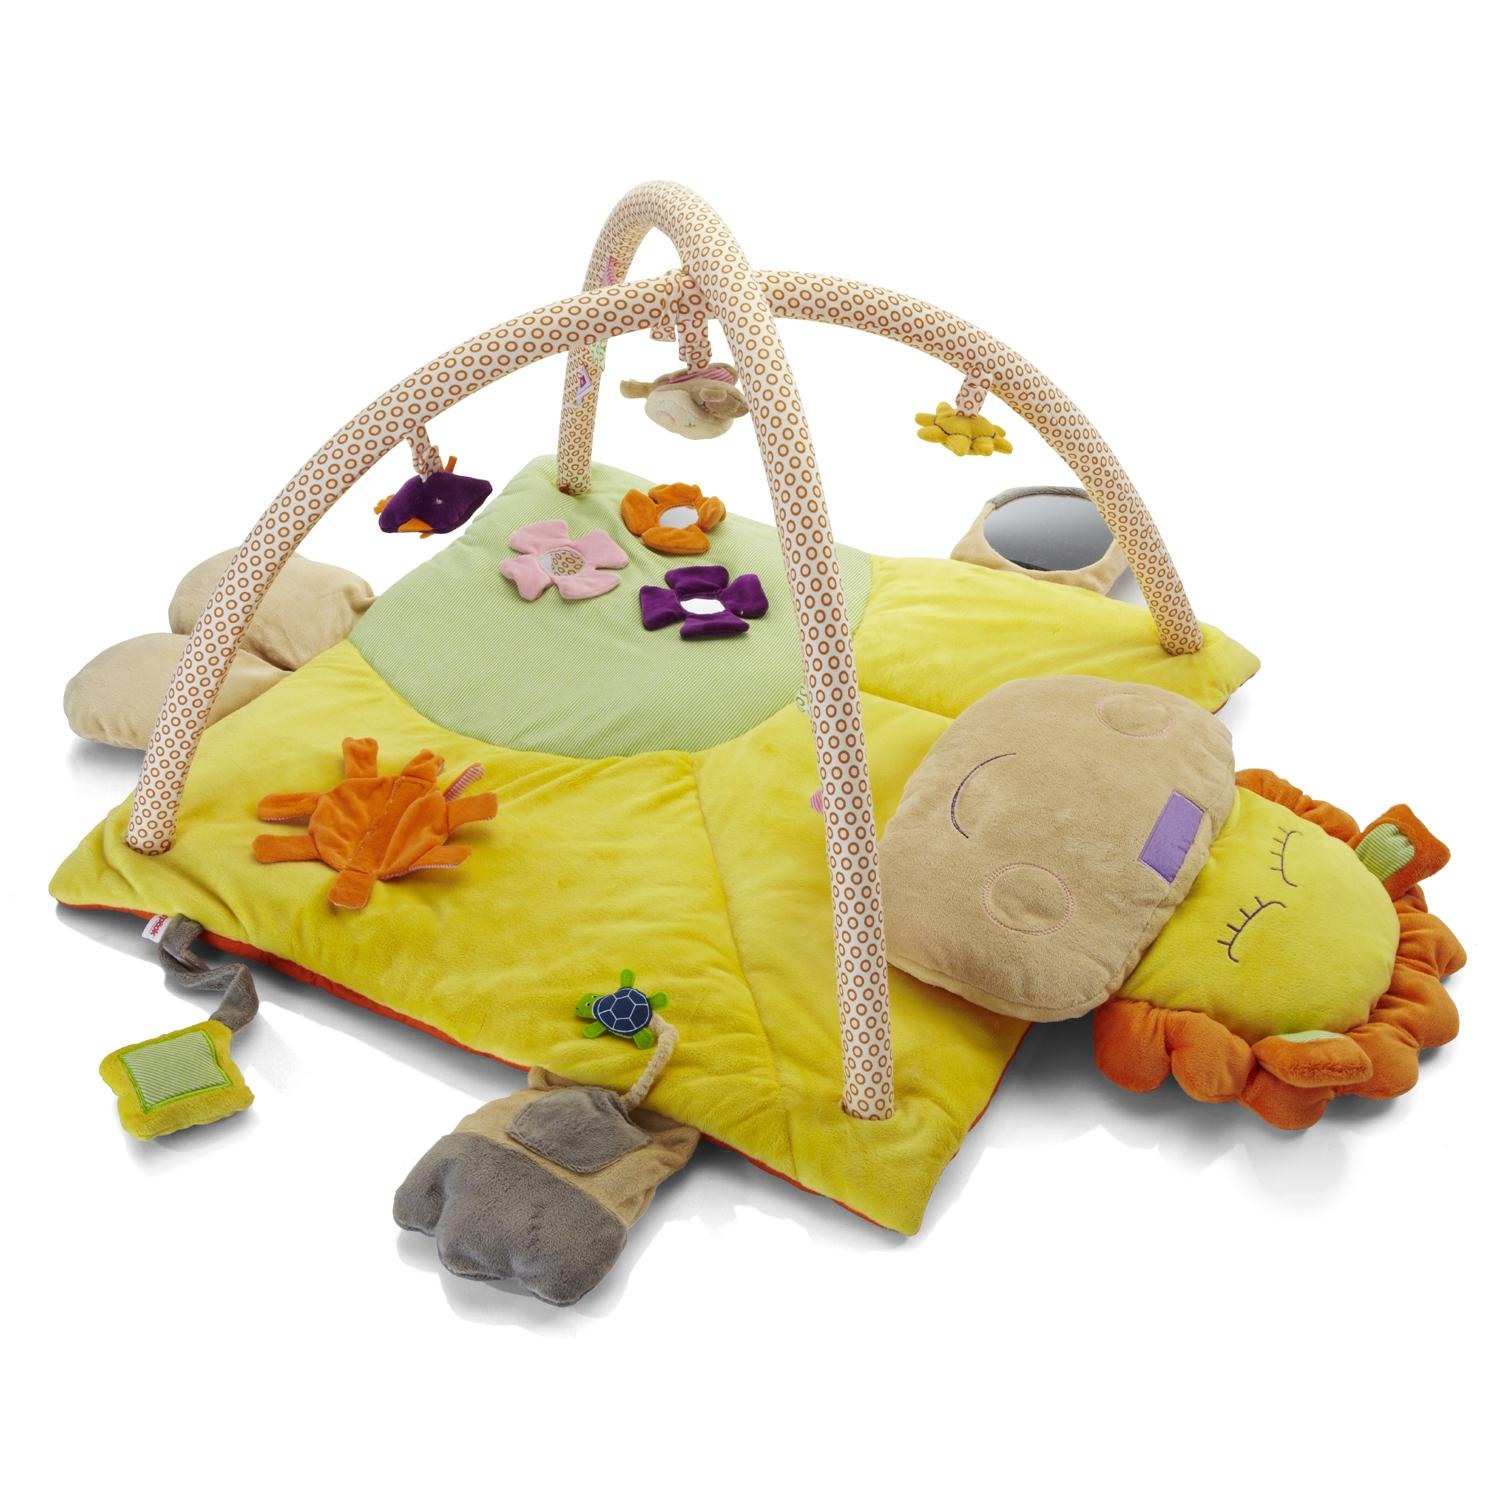 Baby Floor Toys : New moomba lion friends luxury baby activity floor play